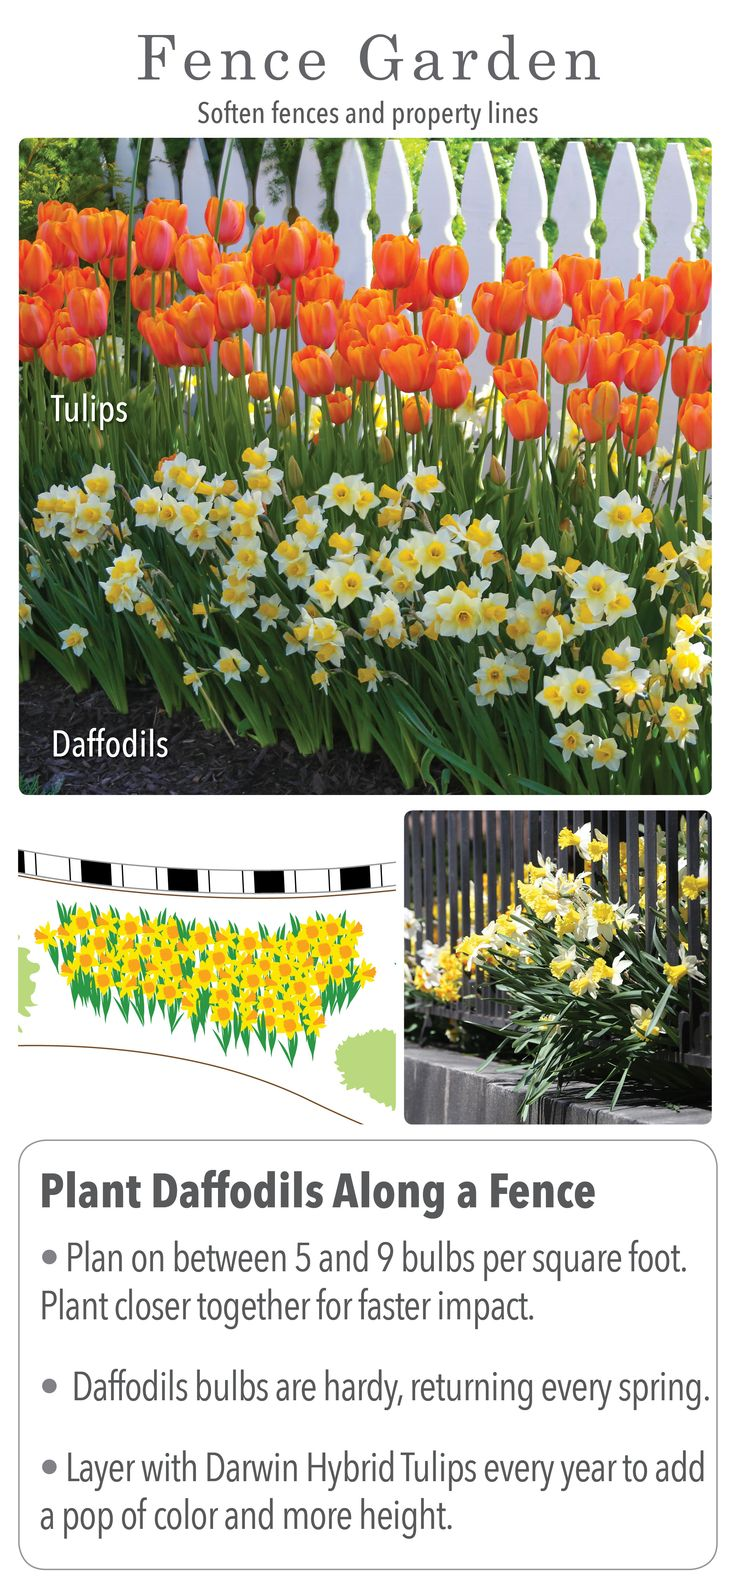 When how to plant daffodil bulbs - Are You Ready To Enjoy An Amazing Bulb Garden Next Spring